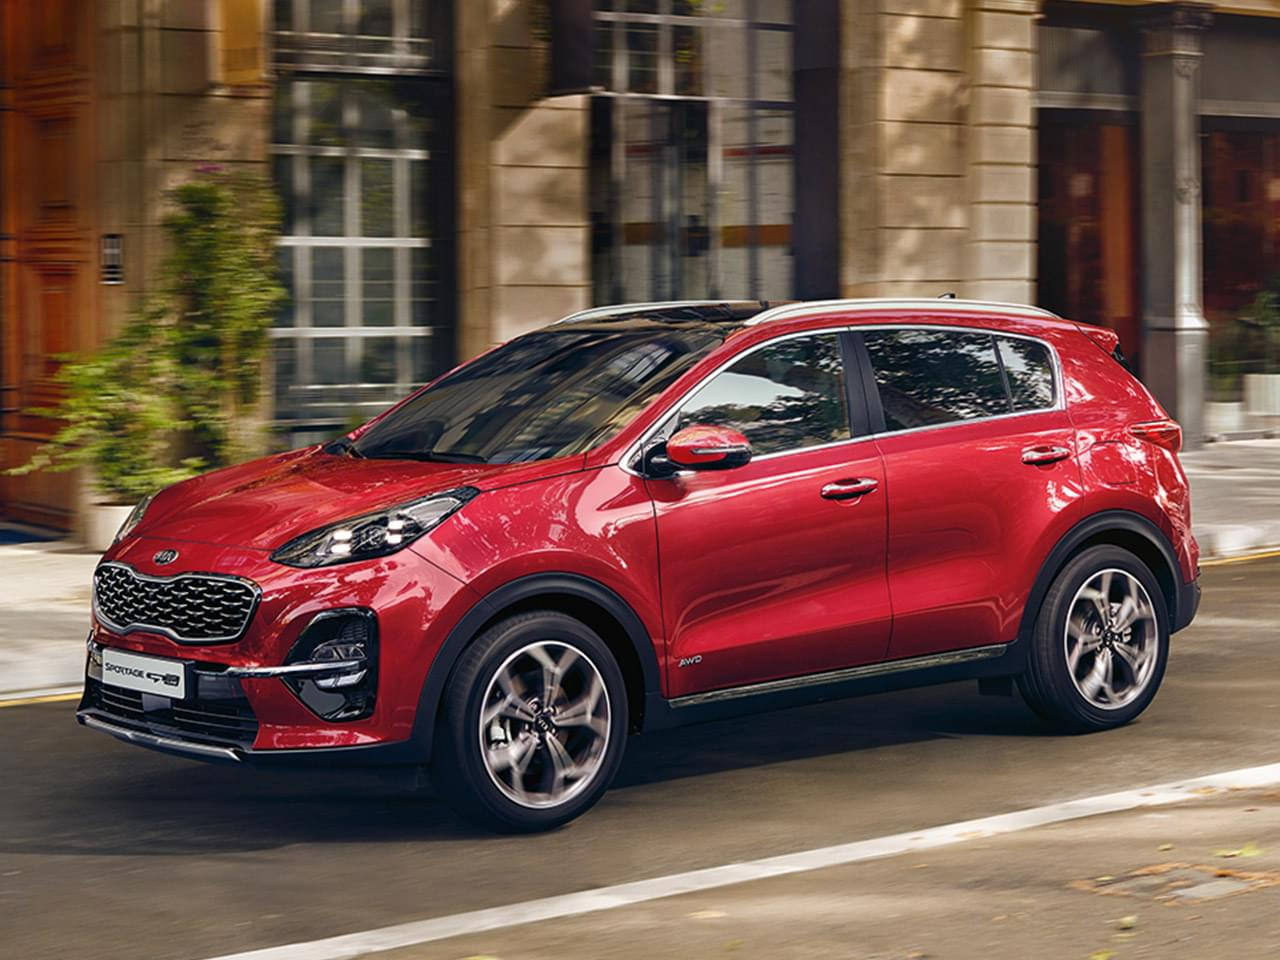 Kia Sportage Edition 7 1.6 GDI inkl. Emotion-Paket